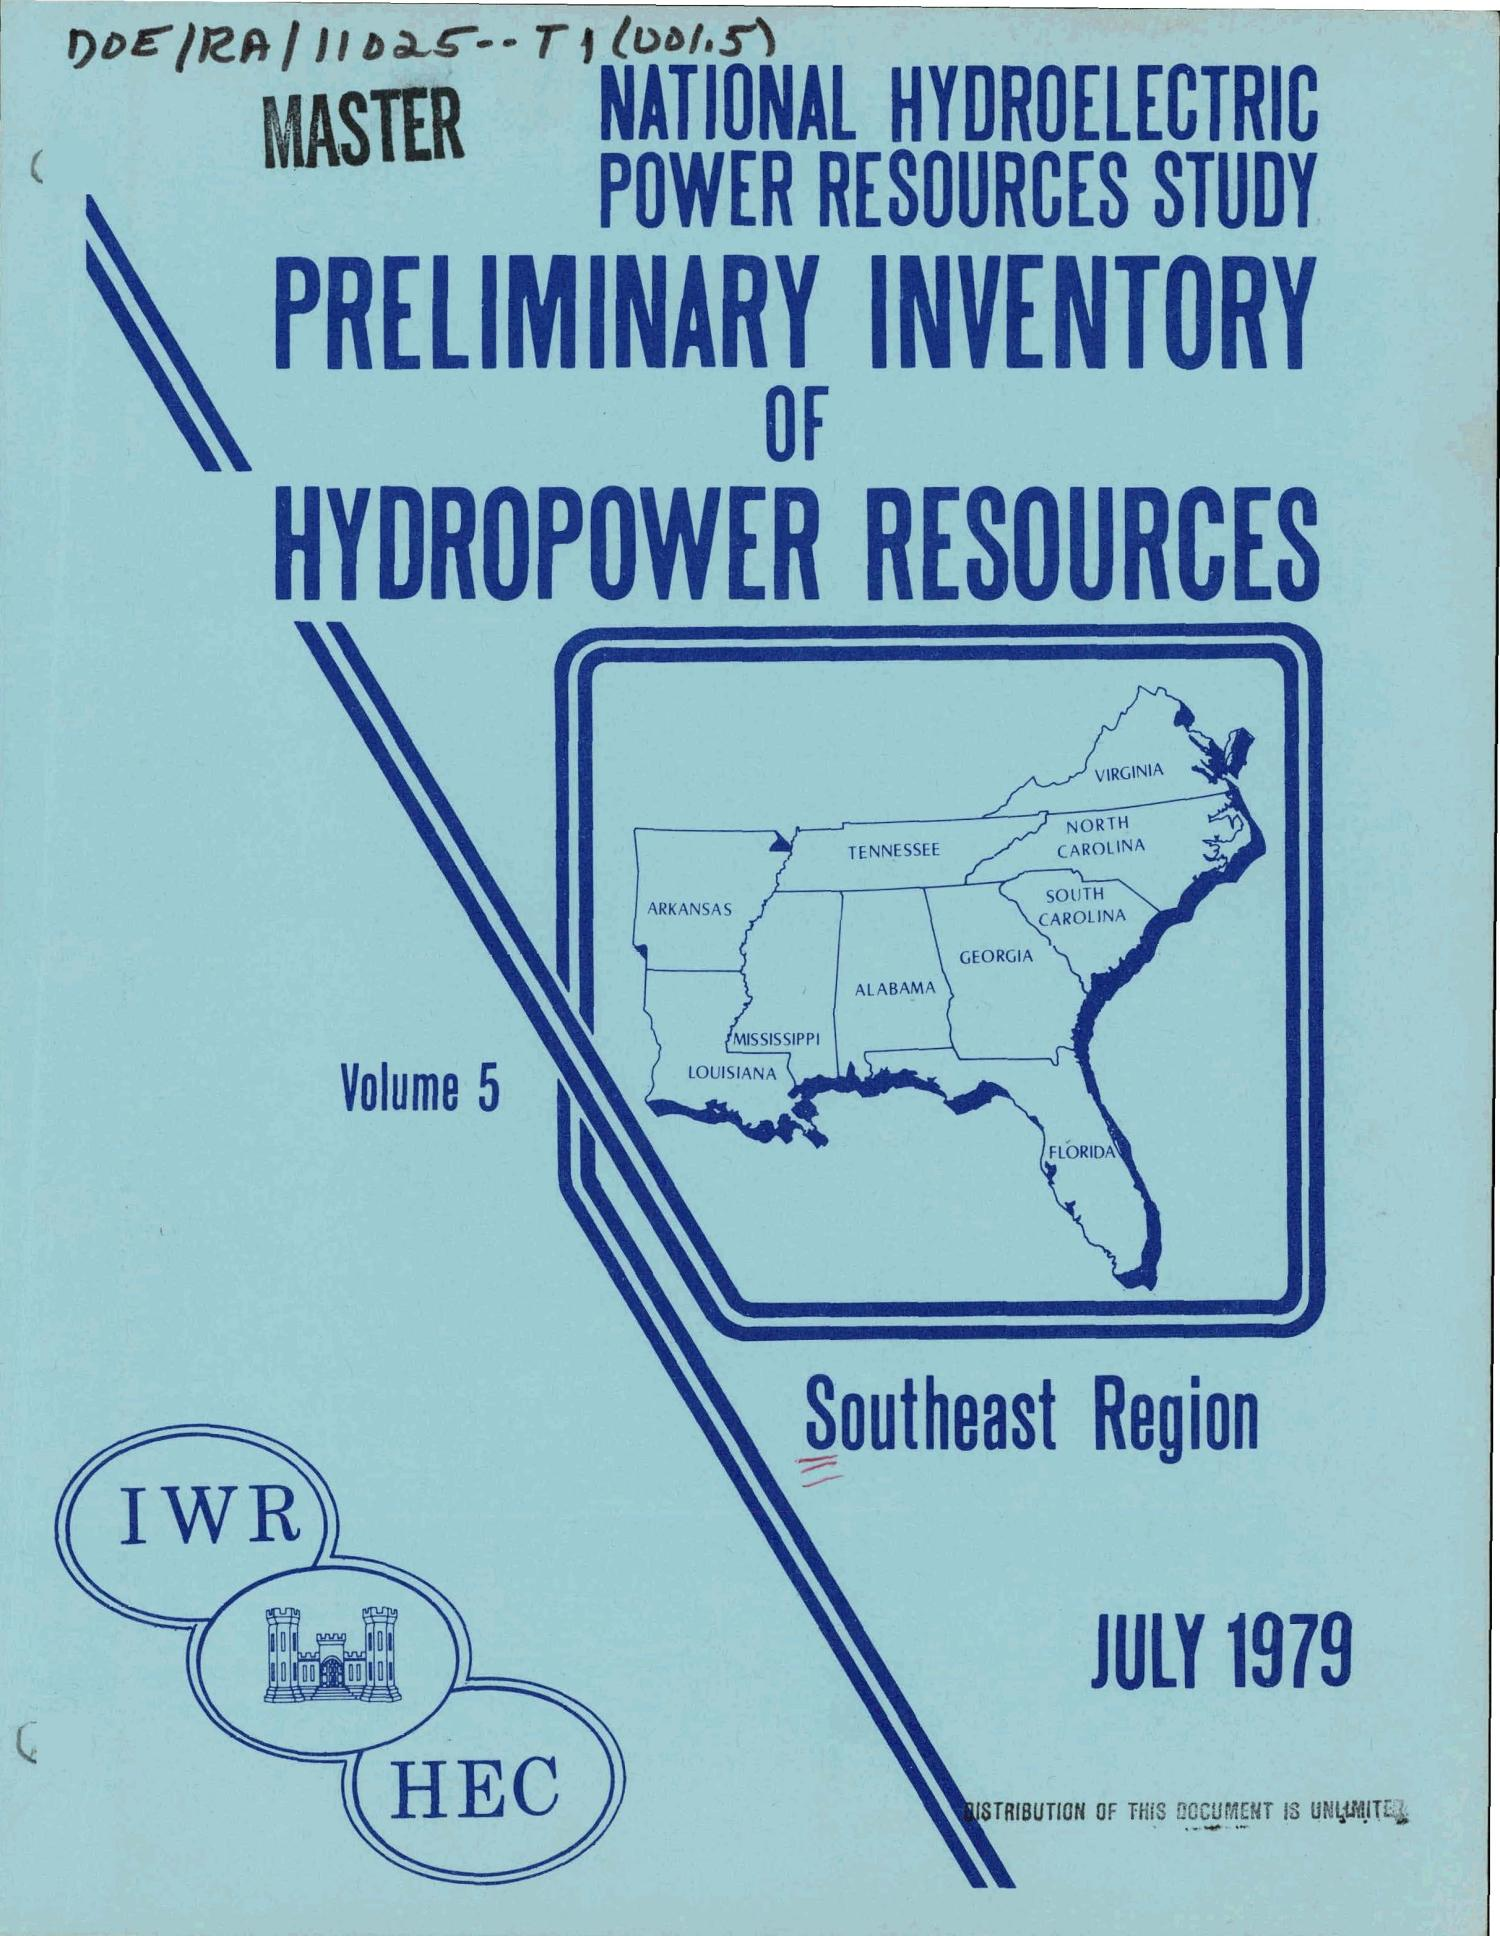 National Hydroelectric Power Resources Study Preliminary Inventory Diagram Of Hydropower Volume 5 Southeast Region Digital Library